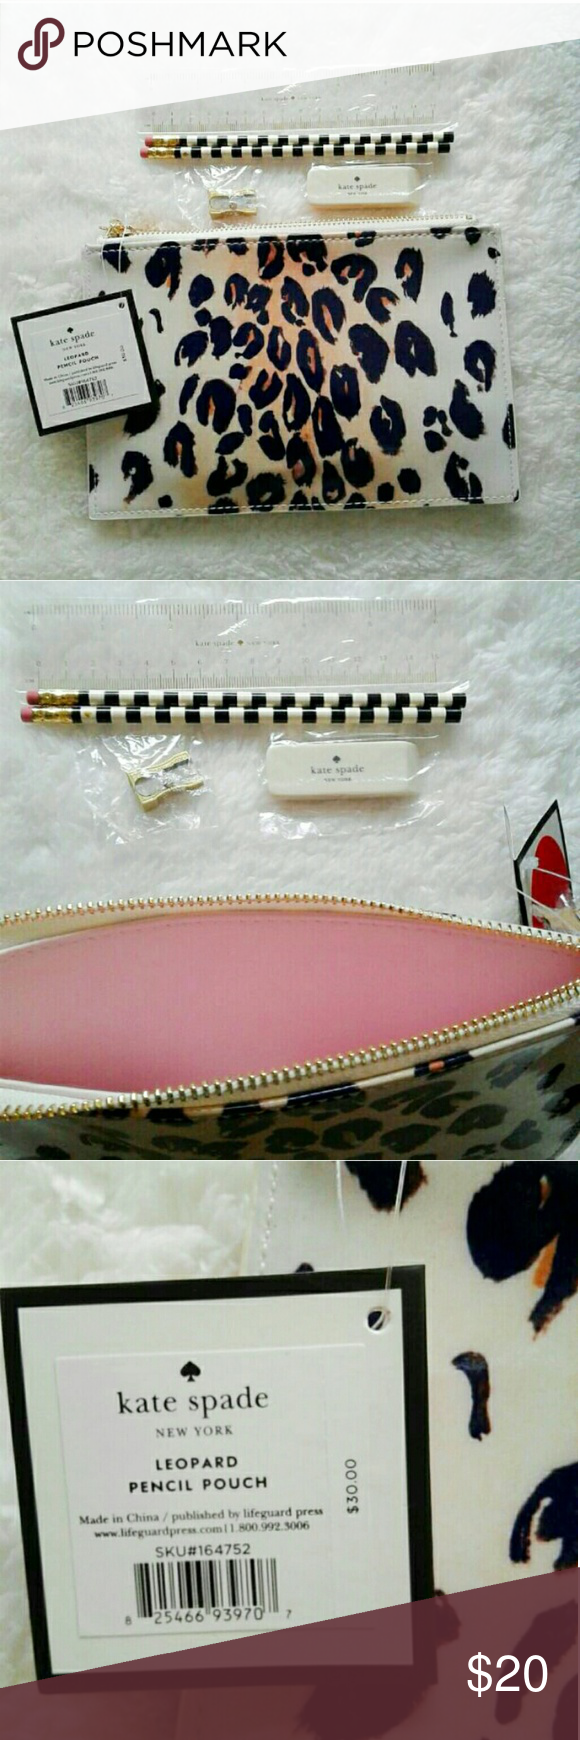 "New Kate Spade Leopard Pencil Case Brand new and authentic Kate Spade Leopard Pencil Case, can be used as makeup pouch.  8.5""x5.5""  Pouch includes: 2 pencils, pencil sharpener, eraser, & ruler kate spade Bags Cosmetic Bags & Cases"